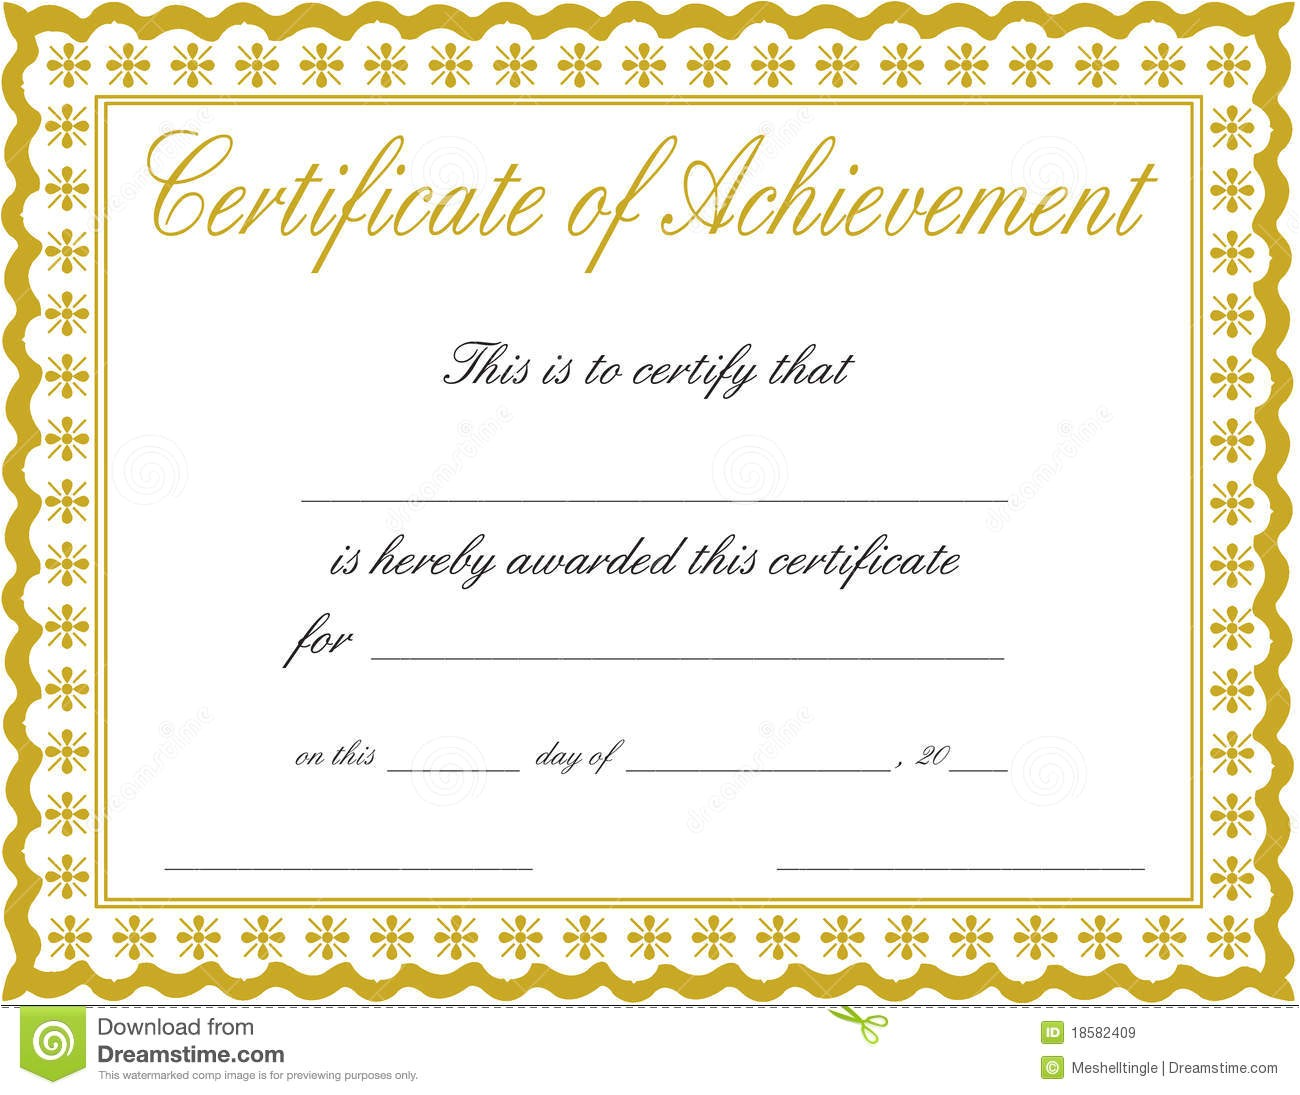 royalty free stock images certificate achievement image18582409